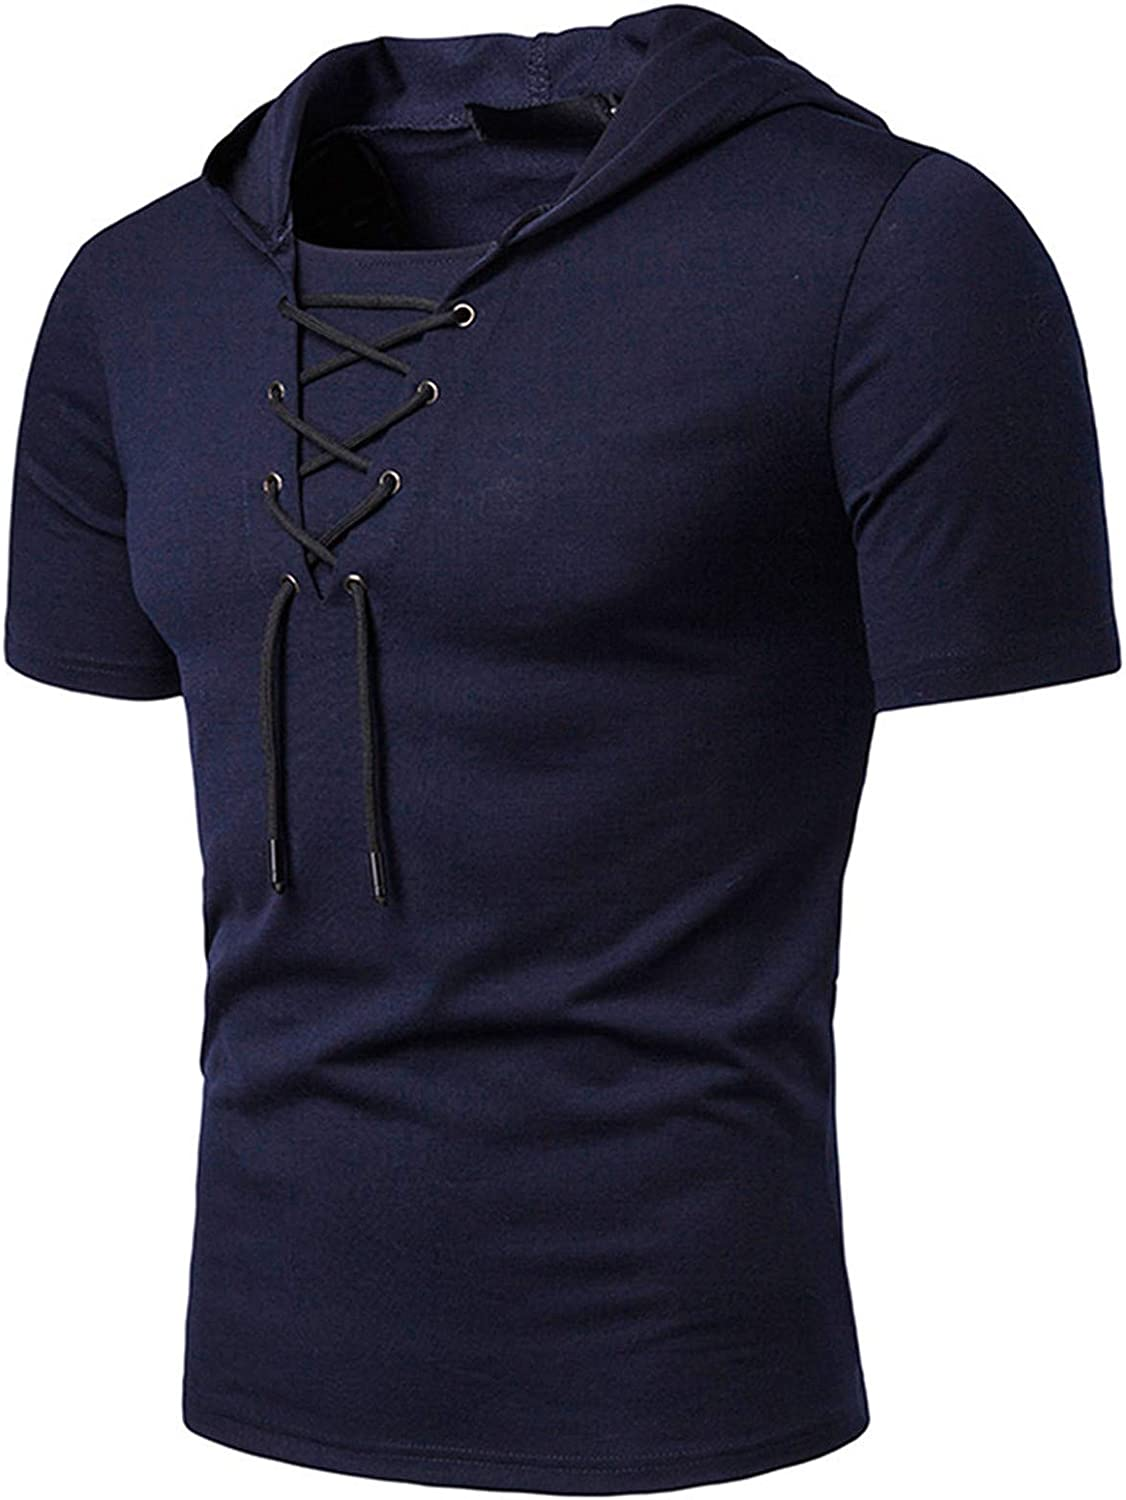 MAYW Mens Casual Soft Skin-FriendlyRegular-Fit Wrinkle-Resistant Pullover Top